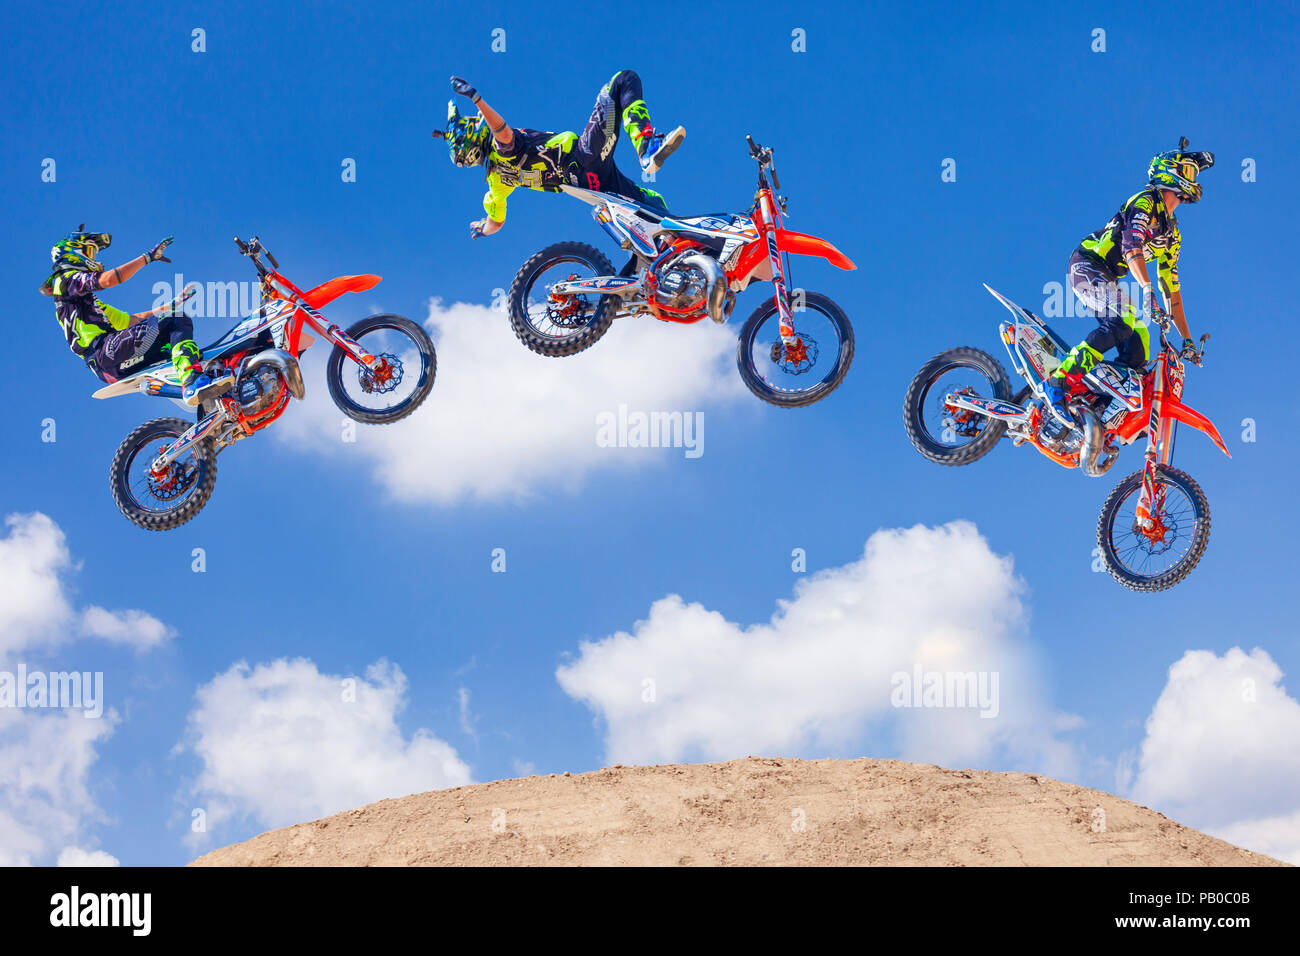 Freestyle motocross sequence. - Stock Image